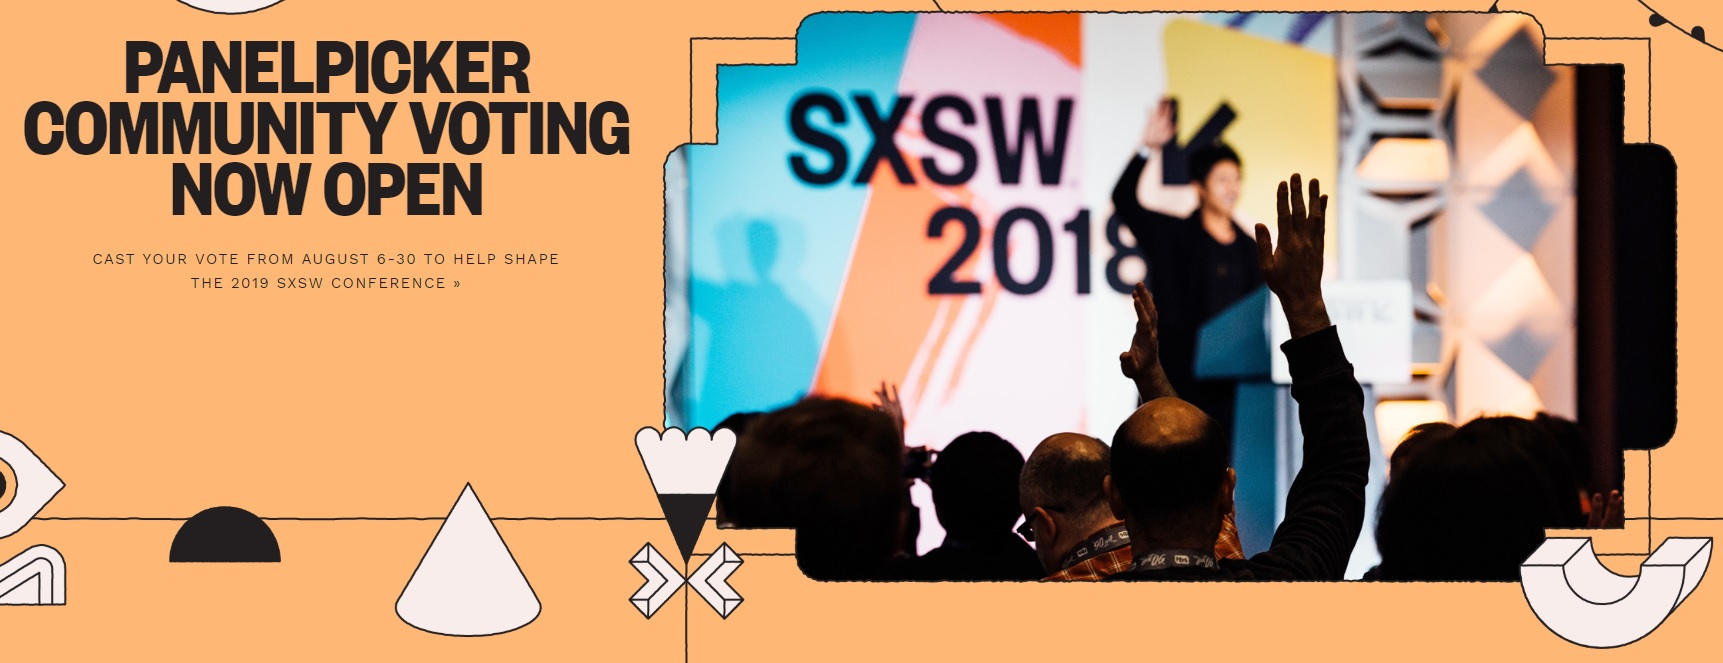 SXSW 2019 Panel Picker Open